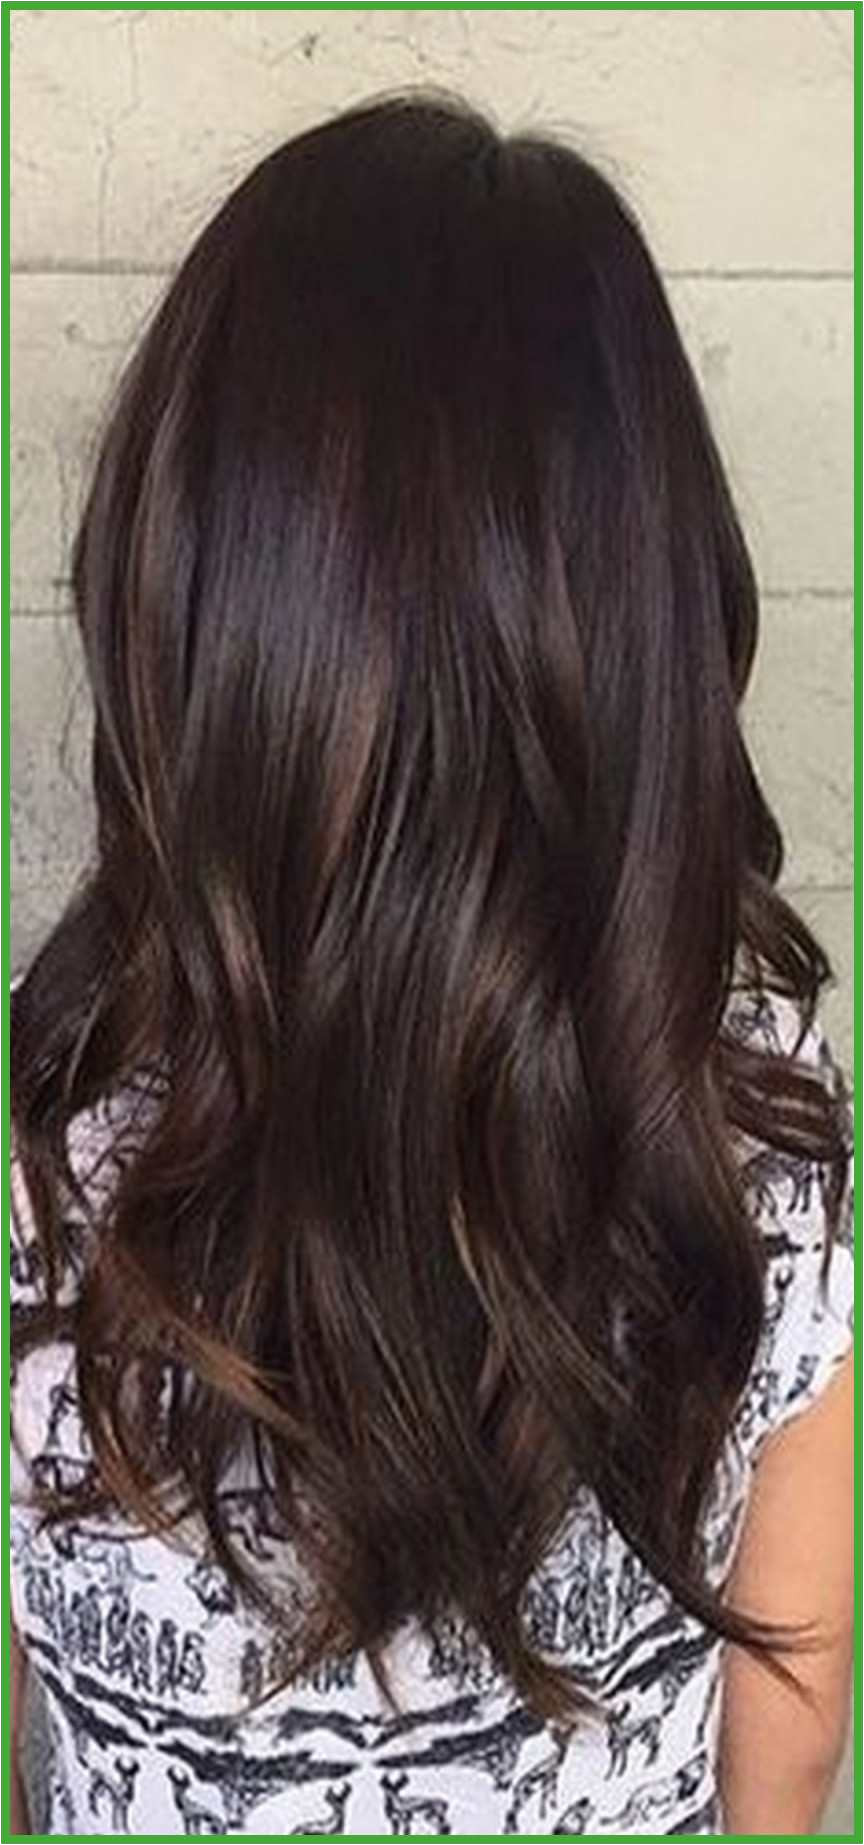 Different Hairstyles for Long Hair Amazing Long Hairstyle Cuts Hairstyles and Cuts Luxury Juice Haircuts 0d